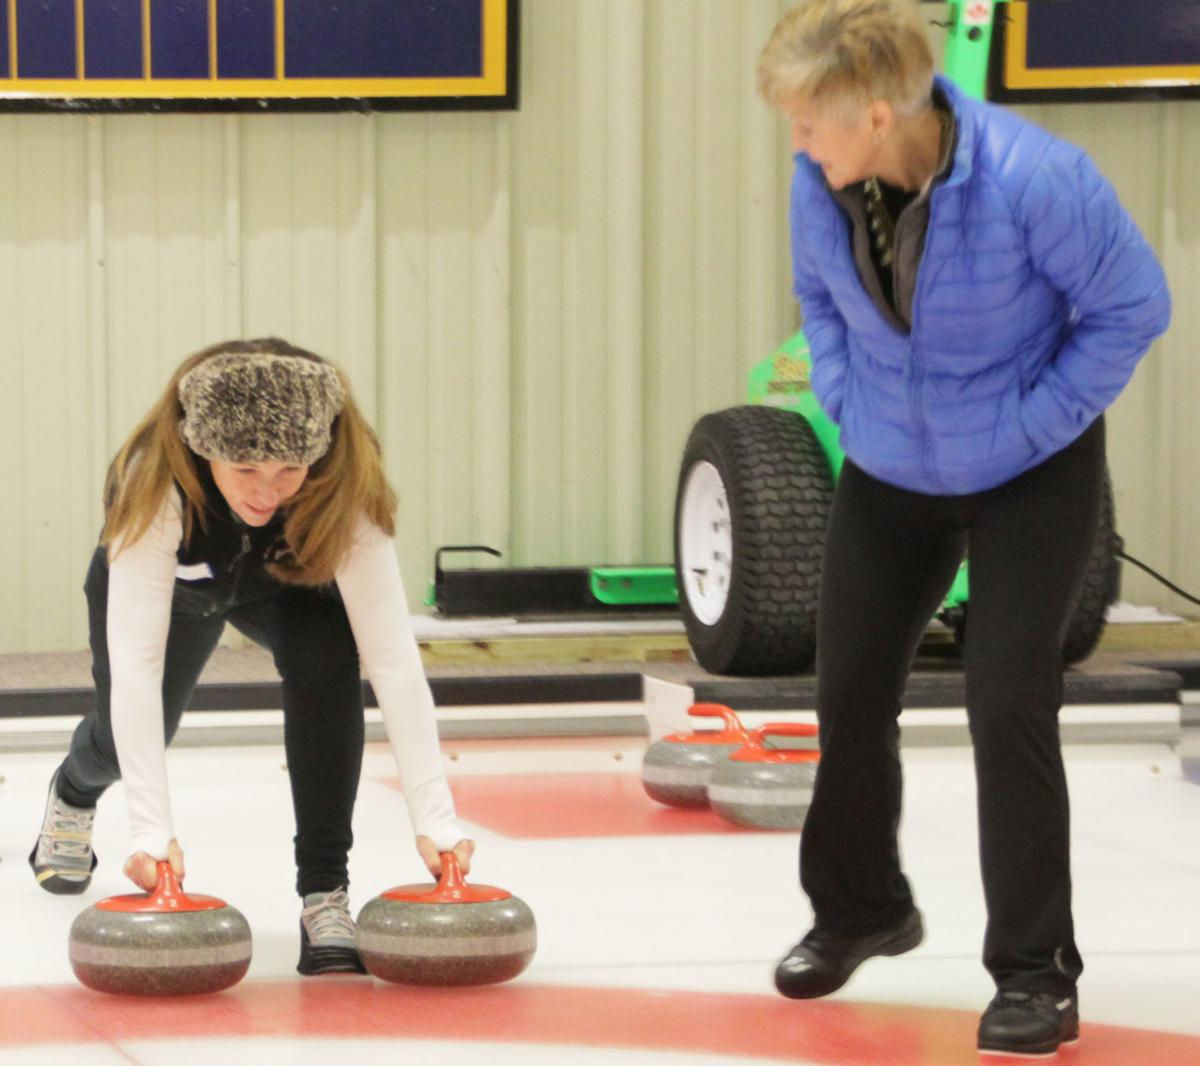 Health Clubs Cape Cod: Curling News: Cape Cod Shows Who's Best At National Women